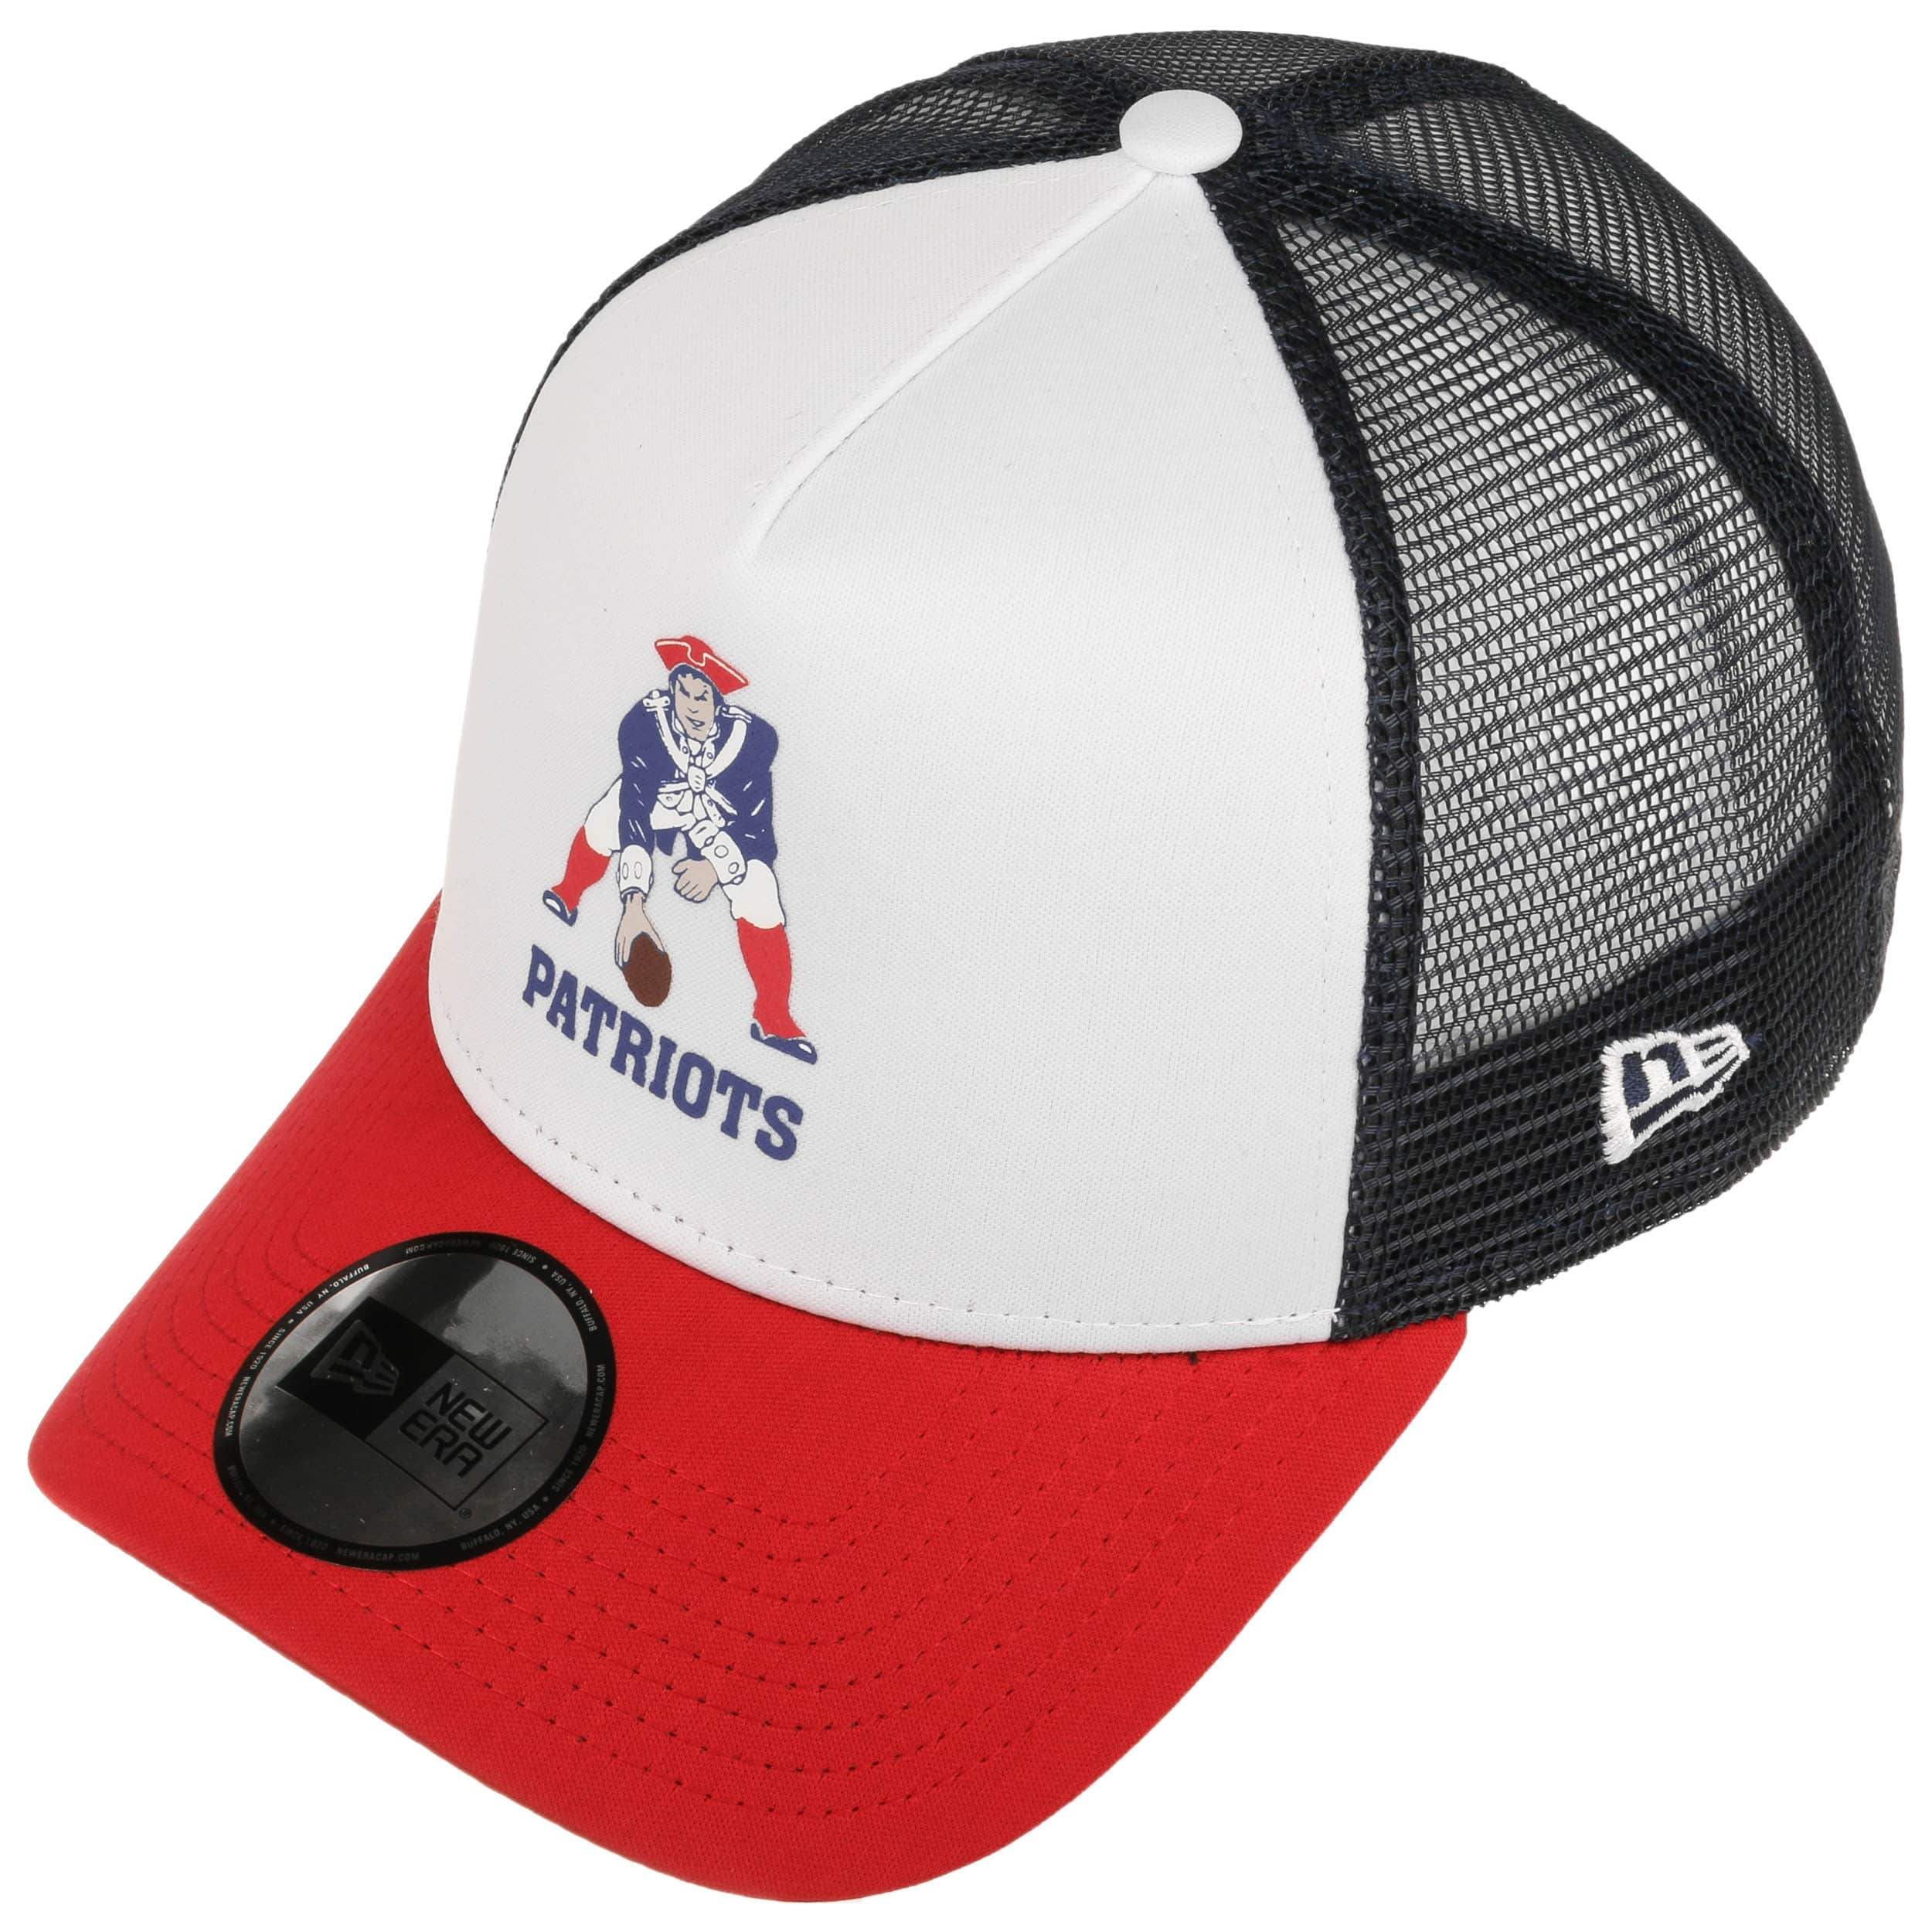 NFL Throwback Trucker Patriots Cap by New Era - white 1 ... 2a6c0b1c58b